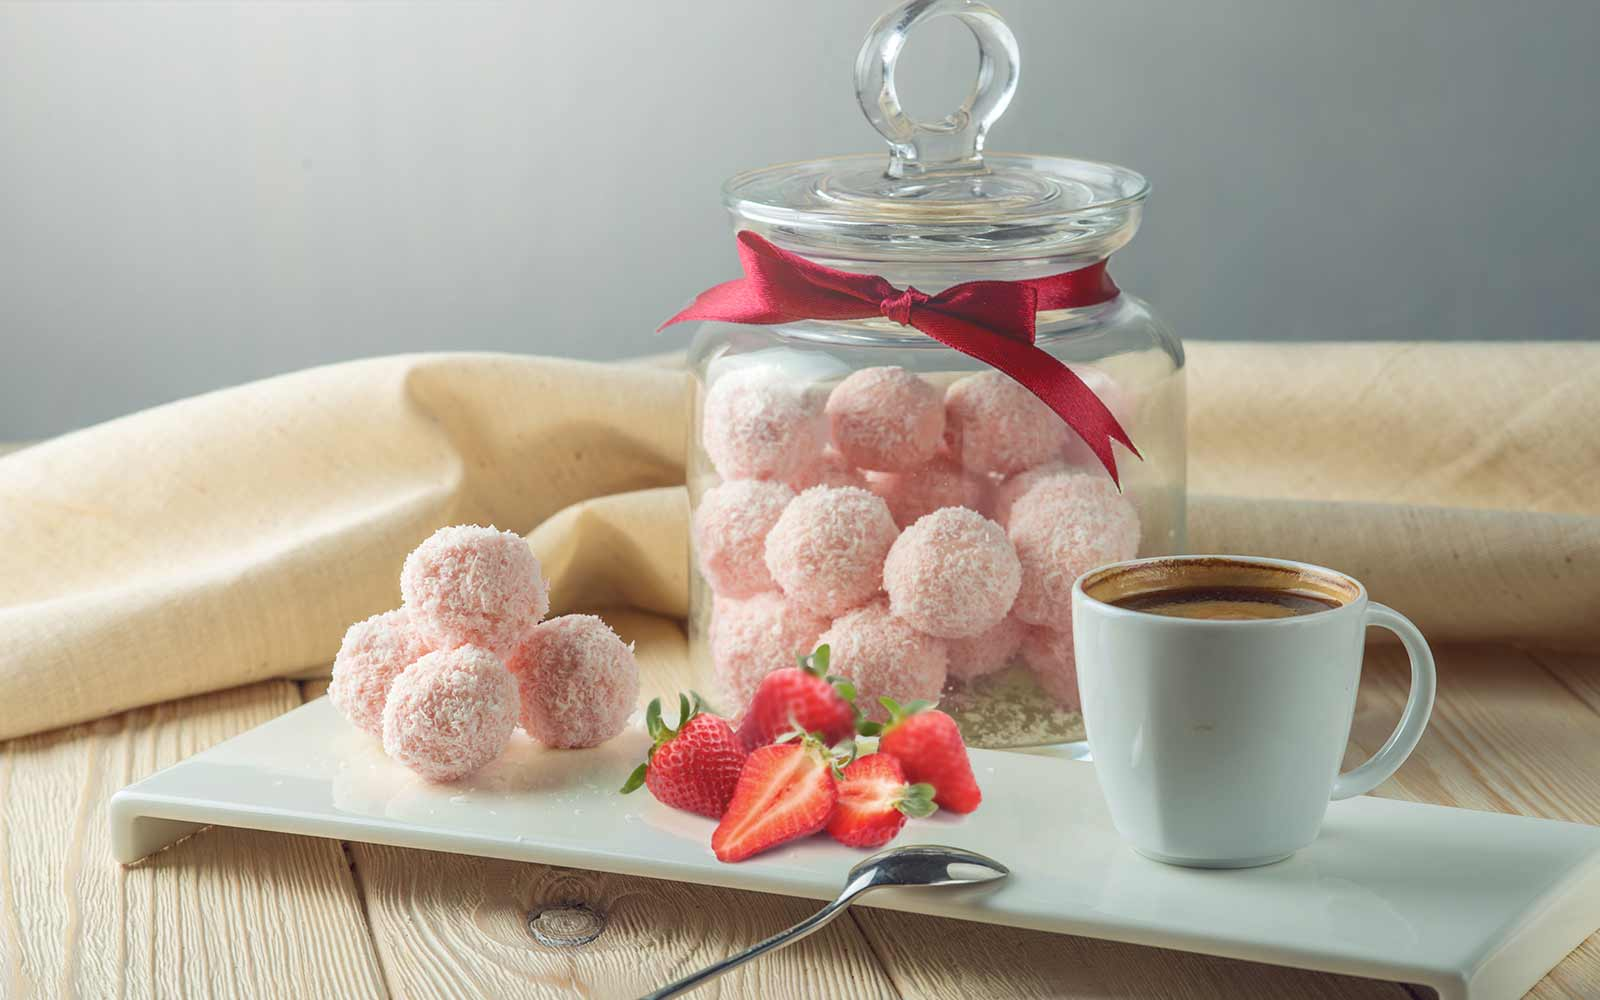 Sugar Free Strawberry Protein Bites